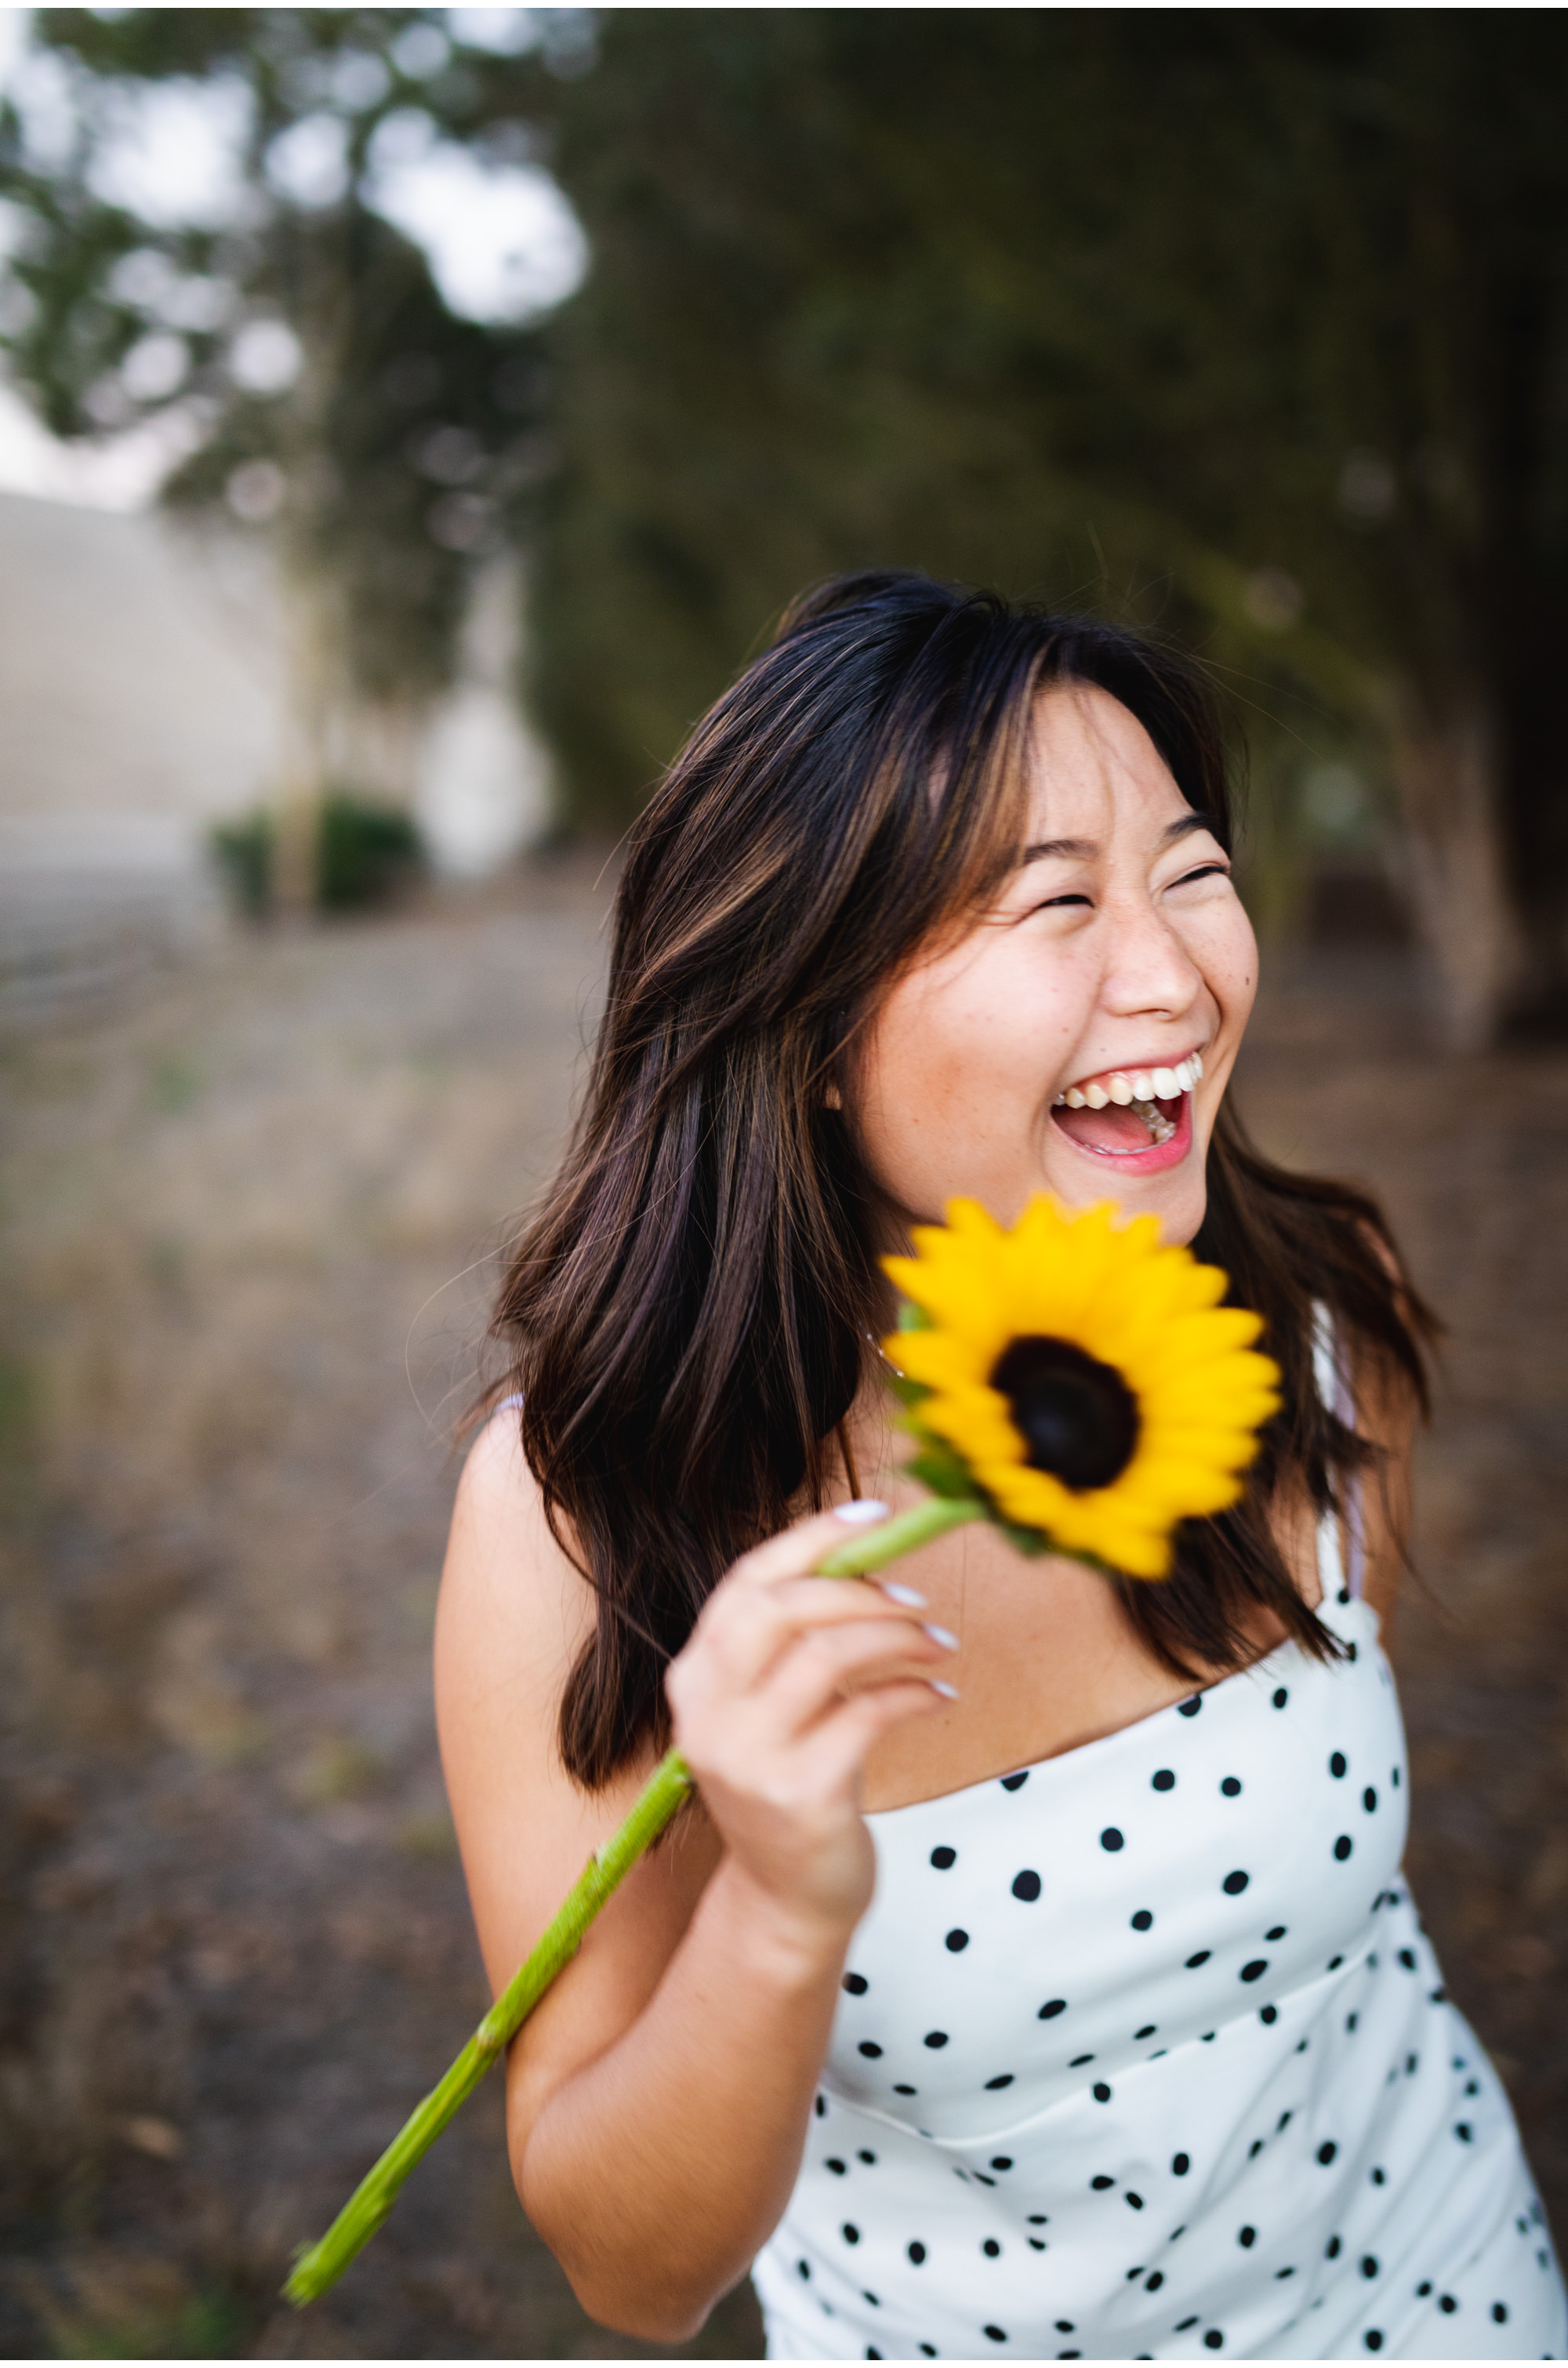 Laughing Jodie and Sunflower.jpg